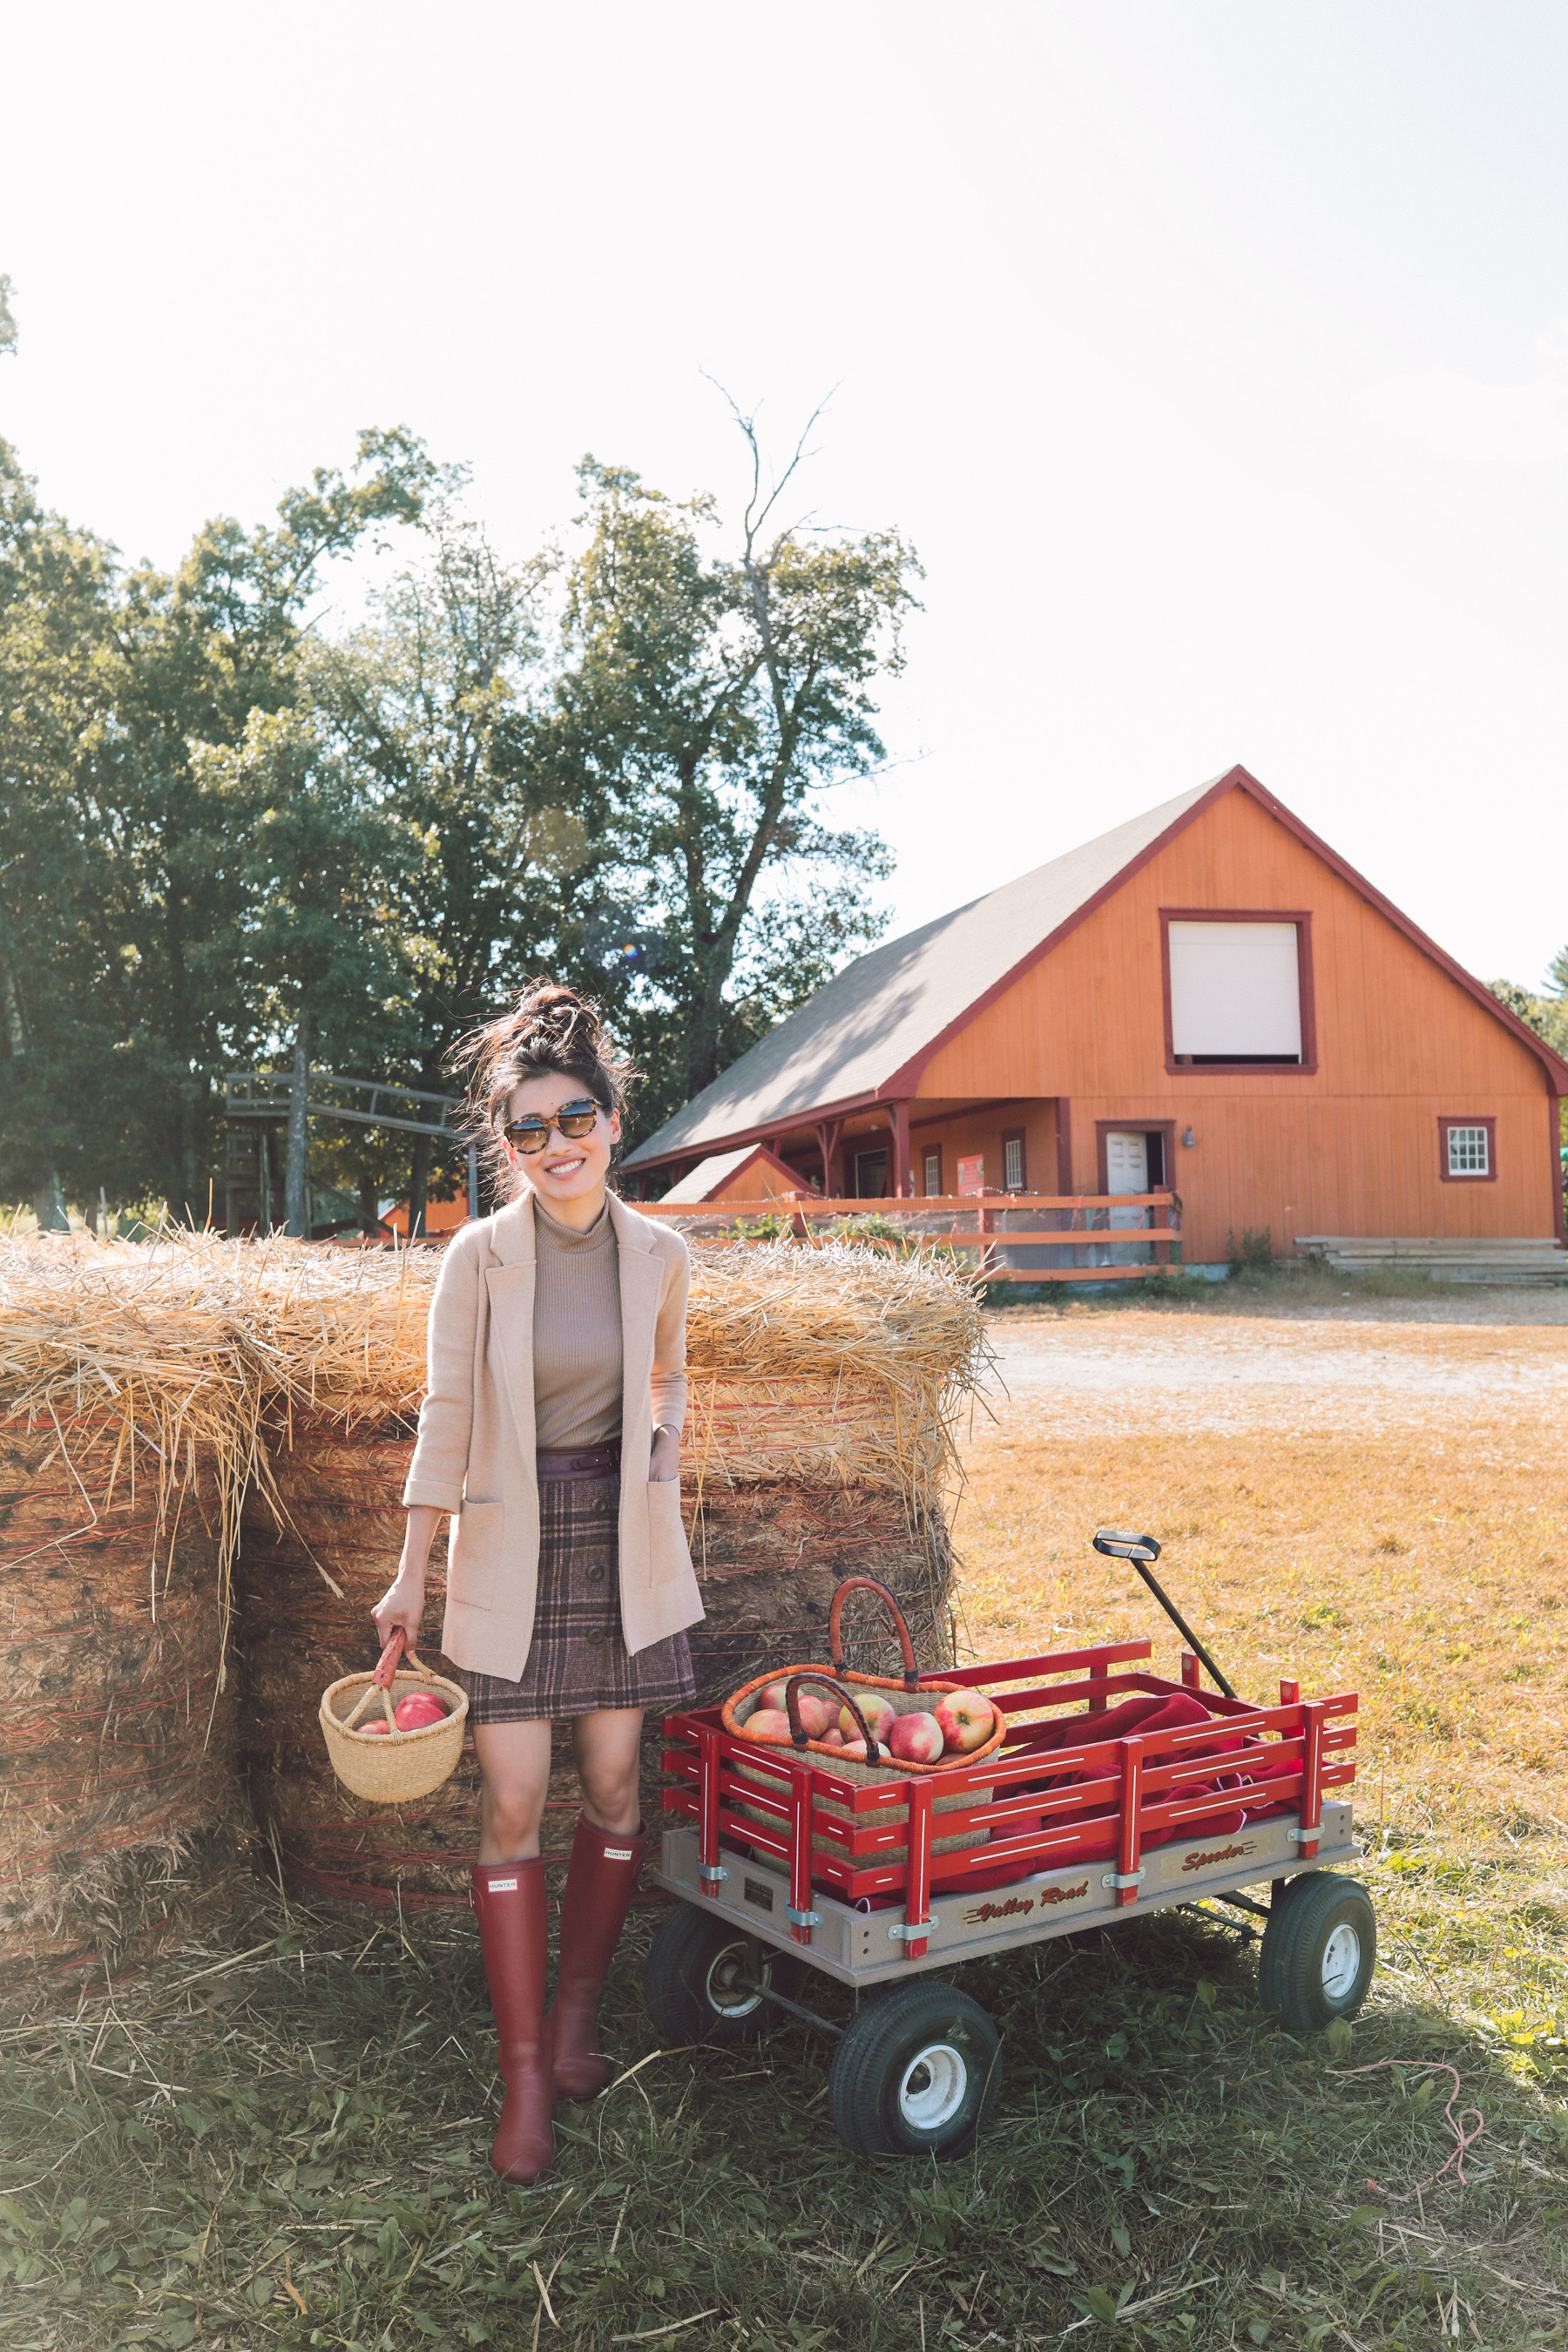 boston parlee farms apple picking jcrew sophie cardigan